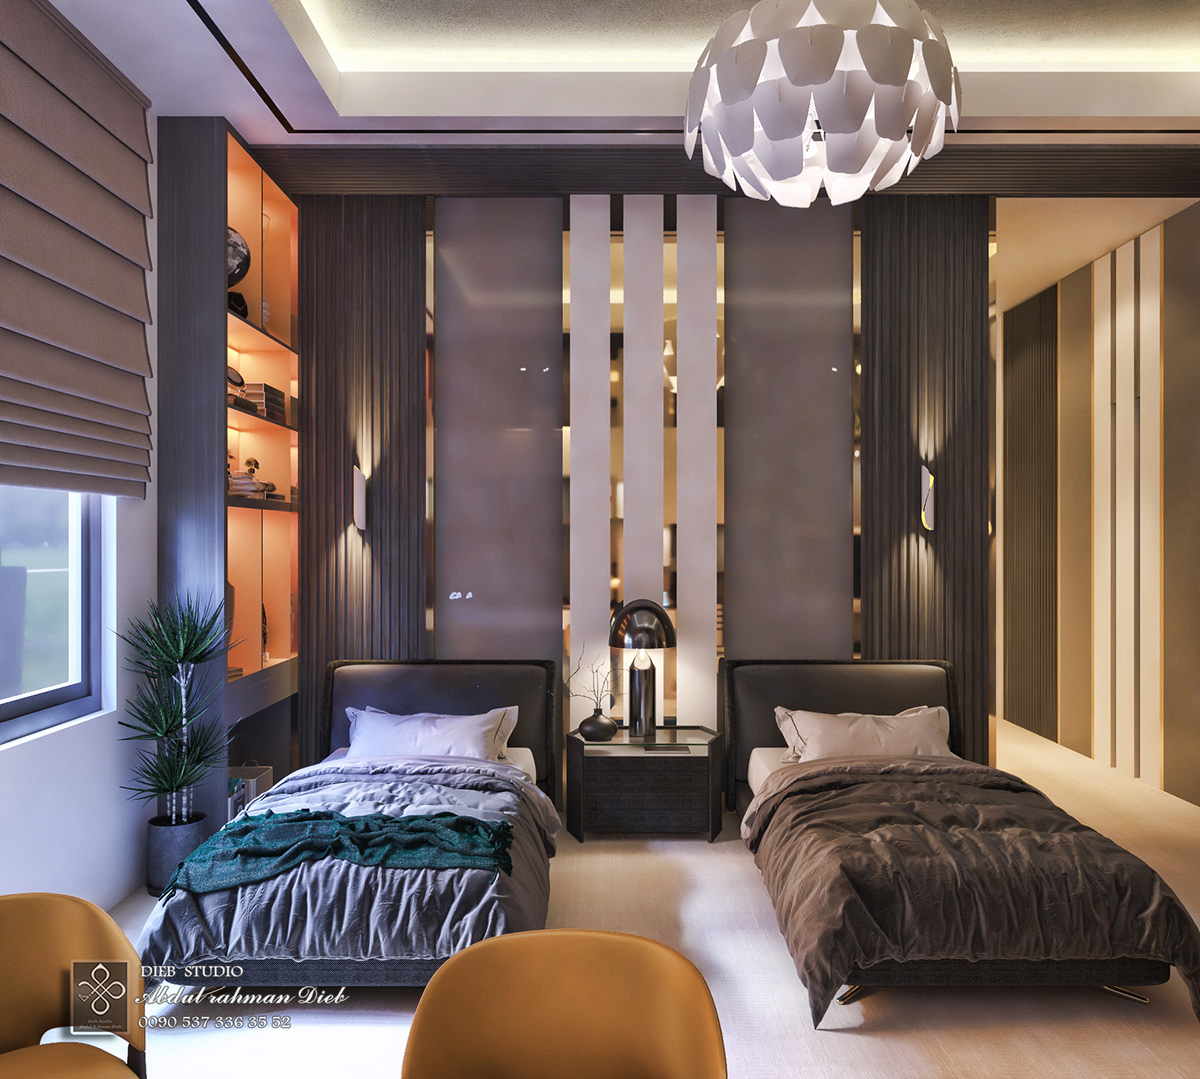 Bedroom In Contemporary Style On Behance: Twin Bedroom Modern Style On Behance